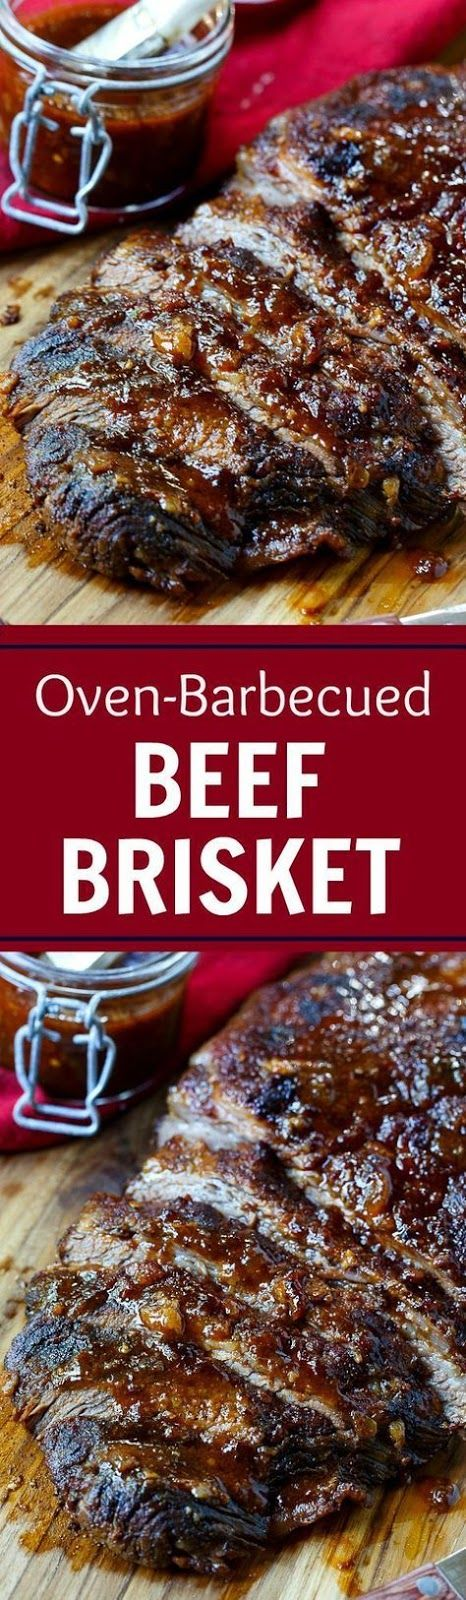 This Oven-Barbecued Beef Brisket is so smokey and flavorful no one will ever guess it wasn't cooked on the grill! Tender and juicy #ovenfood #barbecued #beef #brisket #foodrecipes #easyrecipes